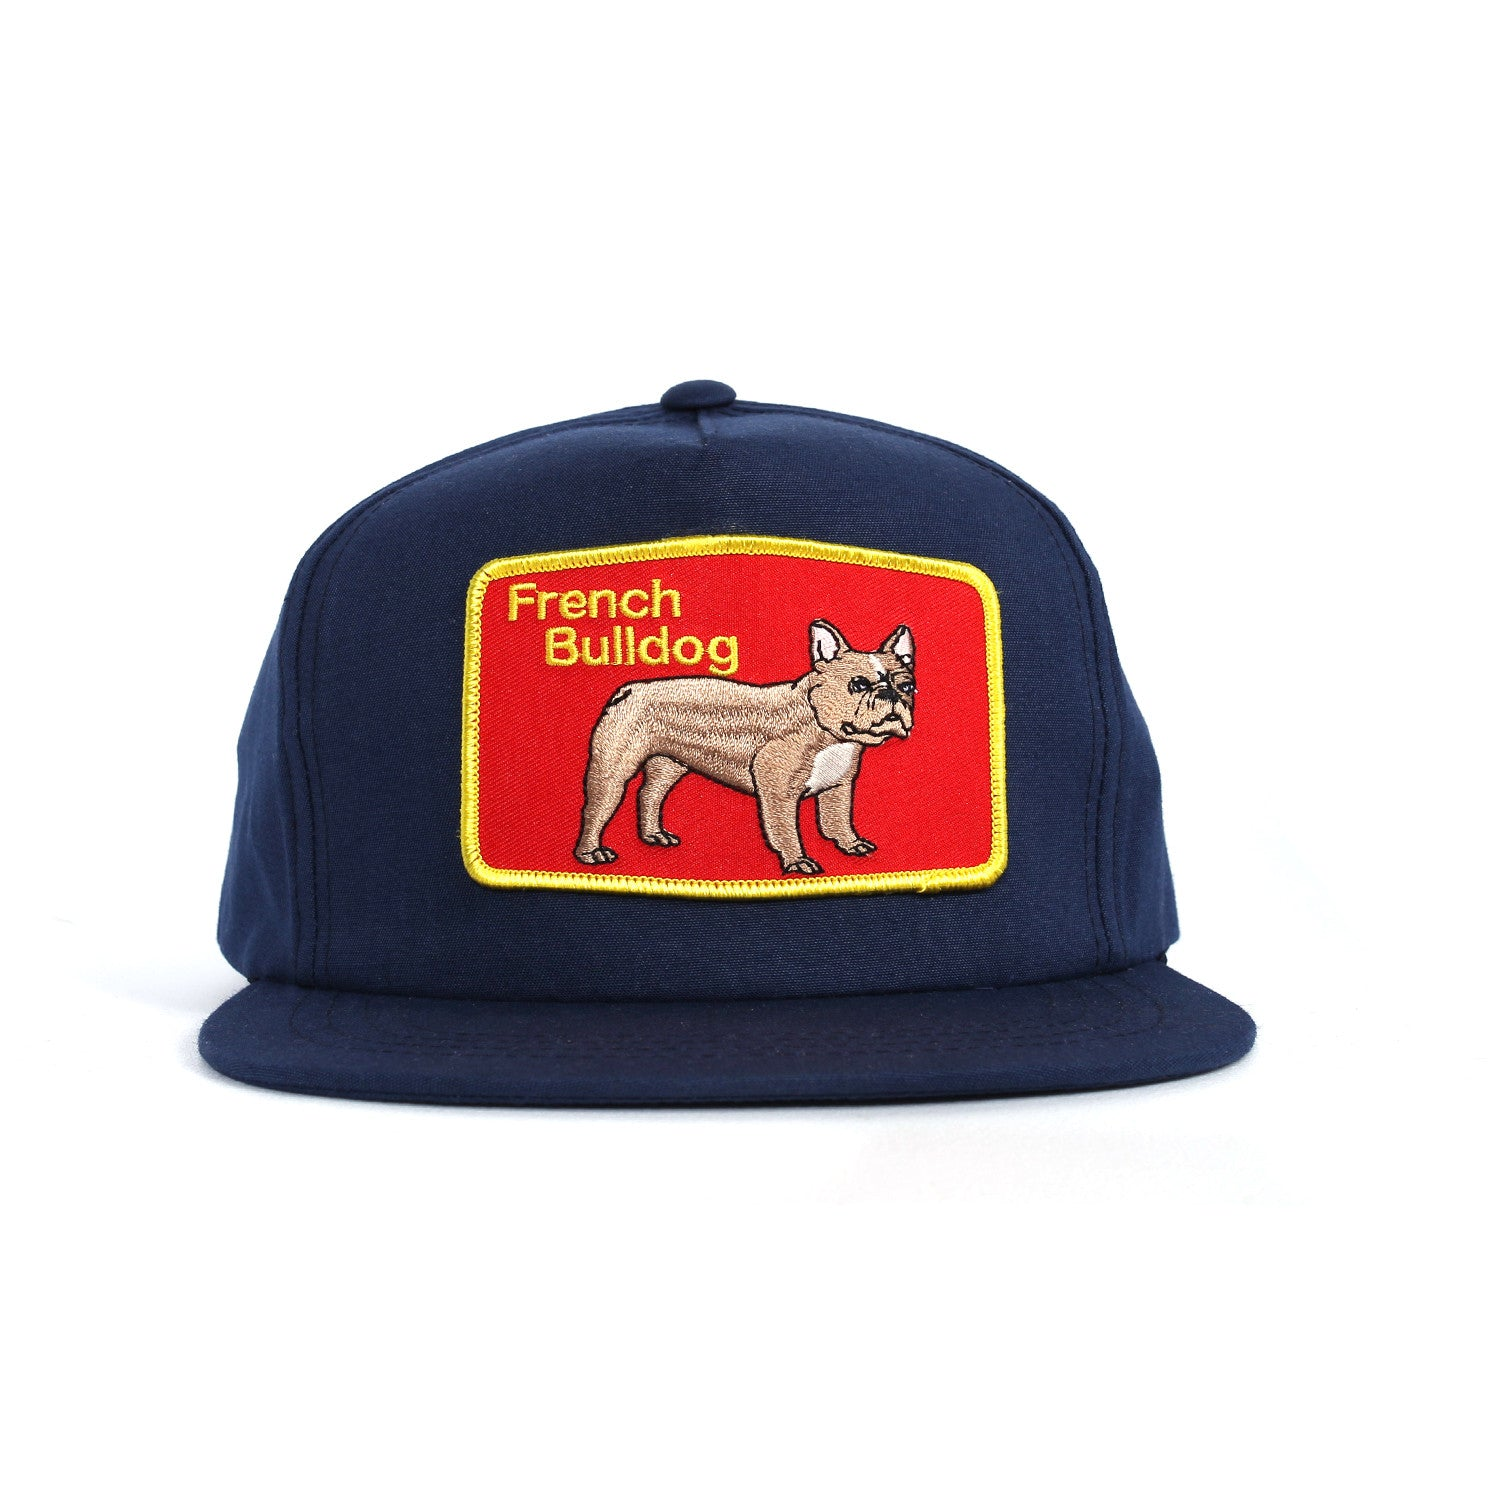 French Bulldog Snapback